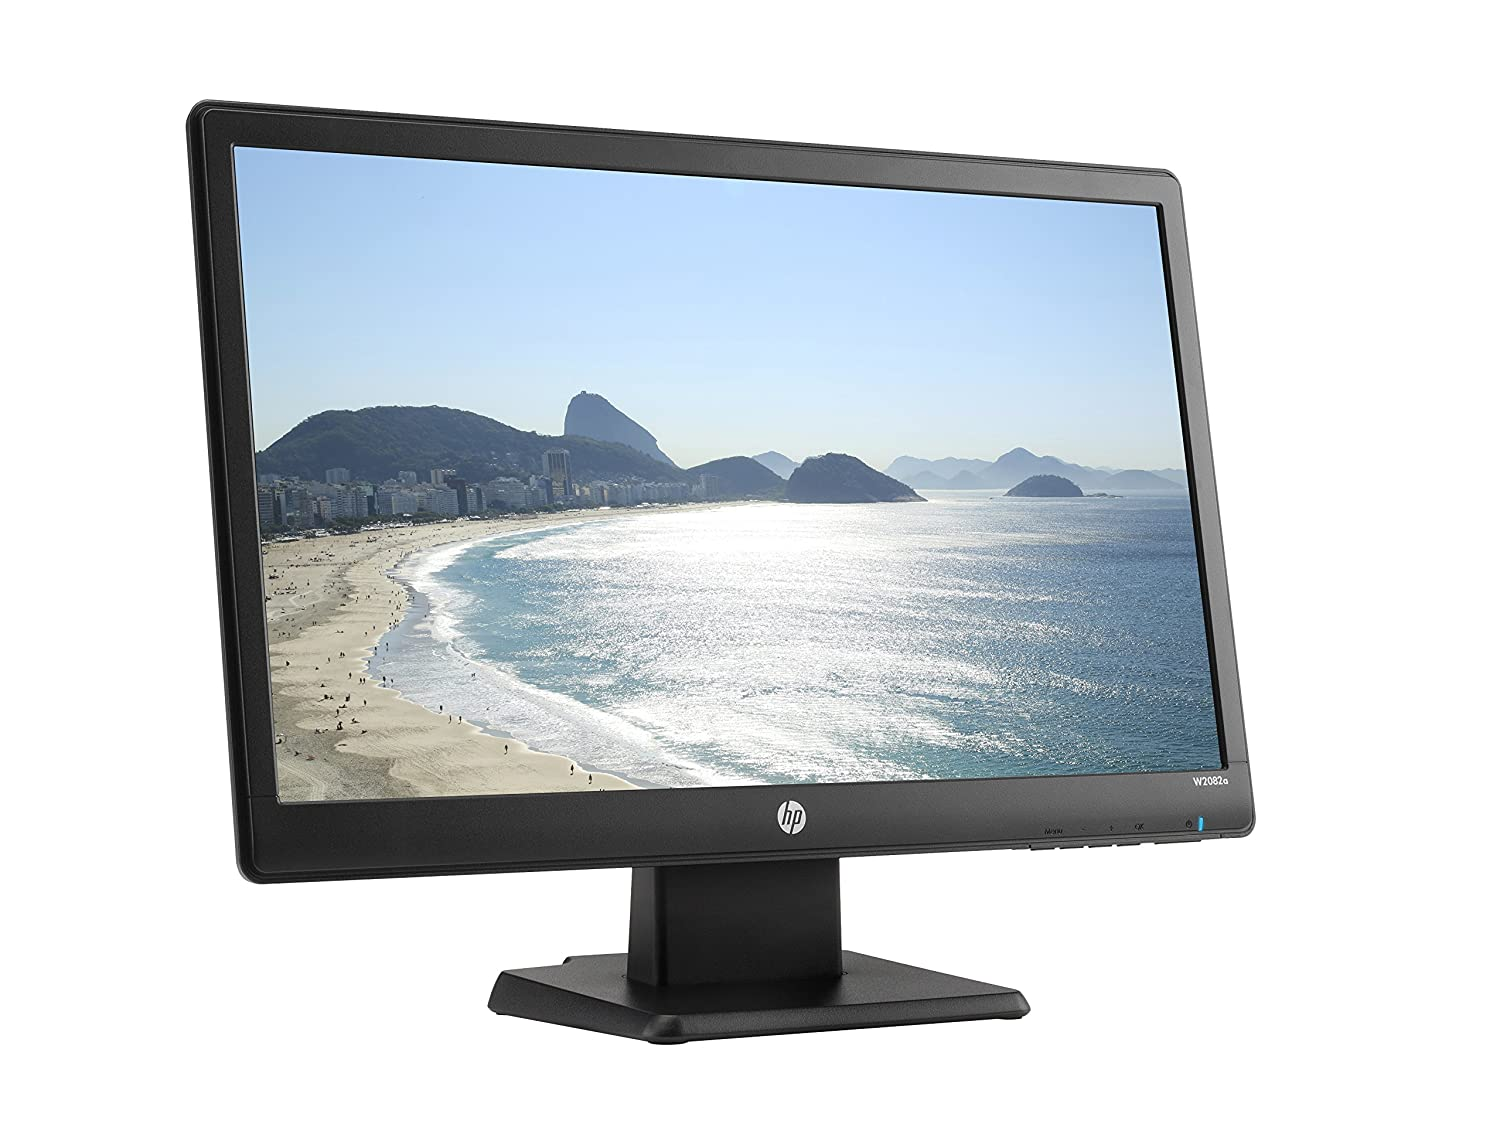 DRIVER: HP 20WM MONITOR